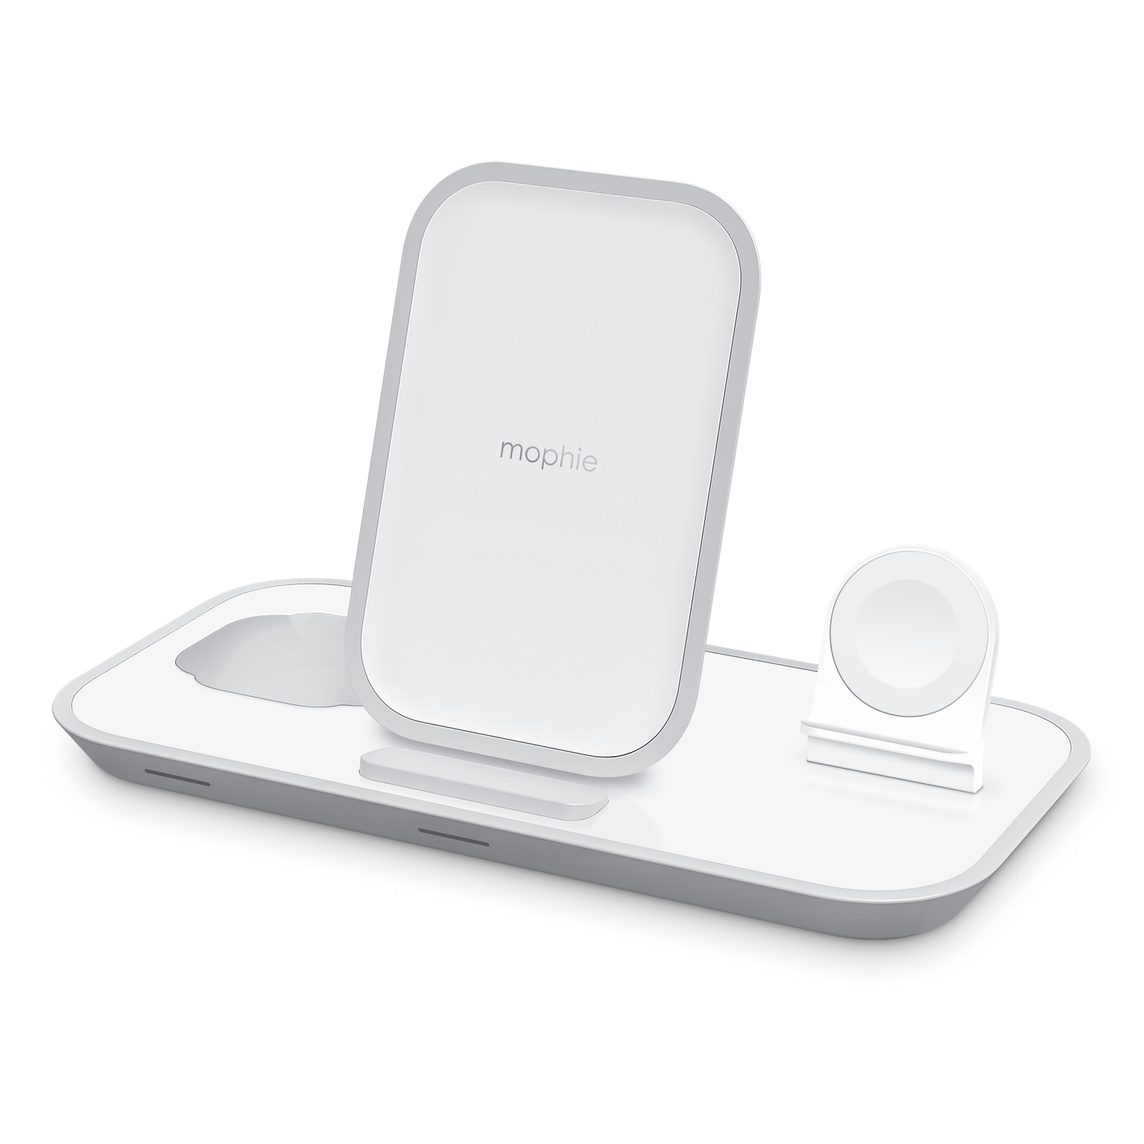 Mophie 3 In 1 Wireless Charging Stand White Apple Uk The charge pad is optimized for apple and samsung fast charge. mophie 3 in 1 wireless charging stand